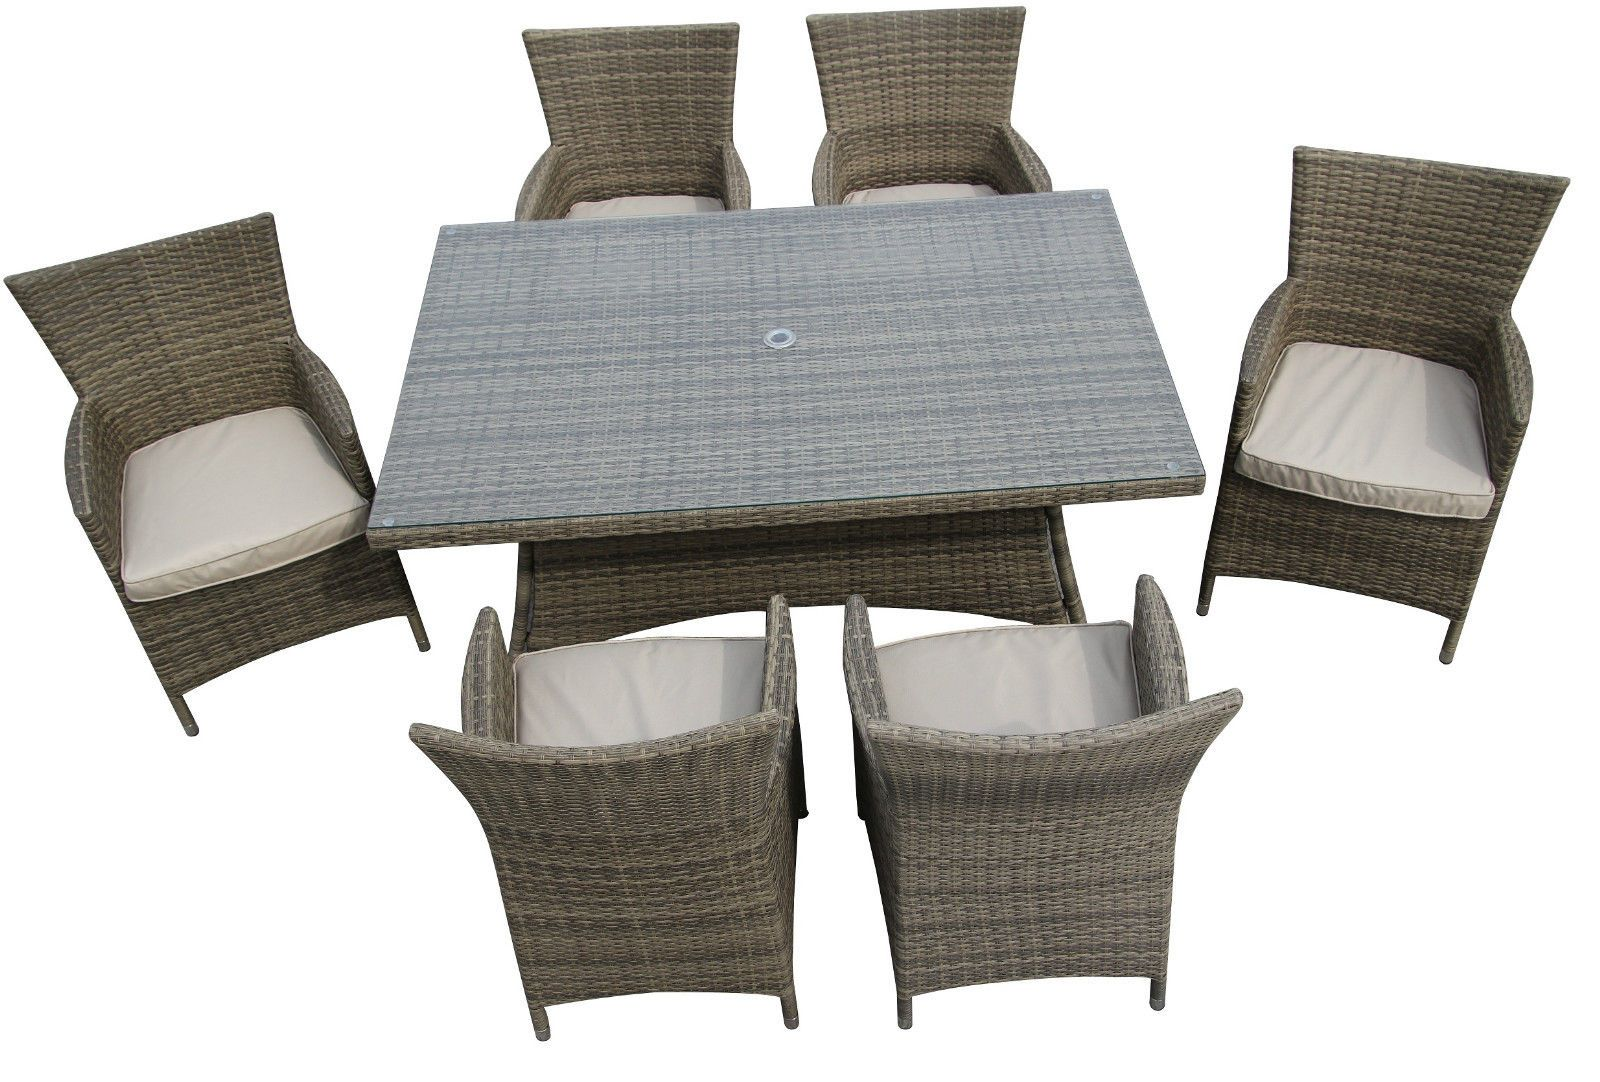 Garden Furniture Cheshire The cheshire 6 seater dining suite workwithnaturefo